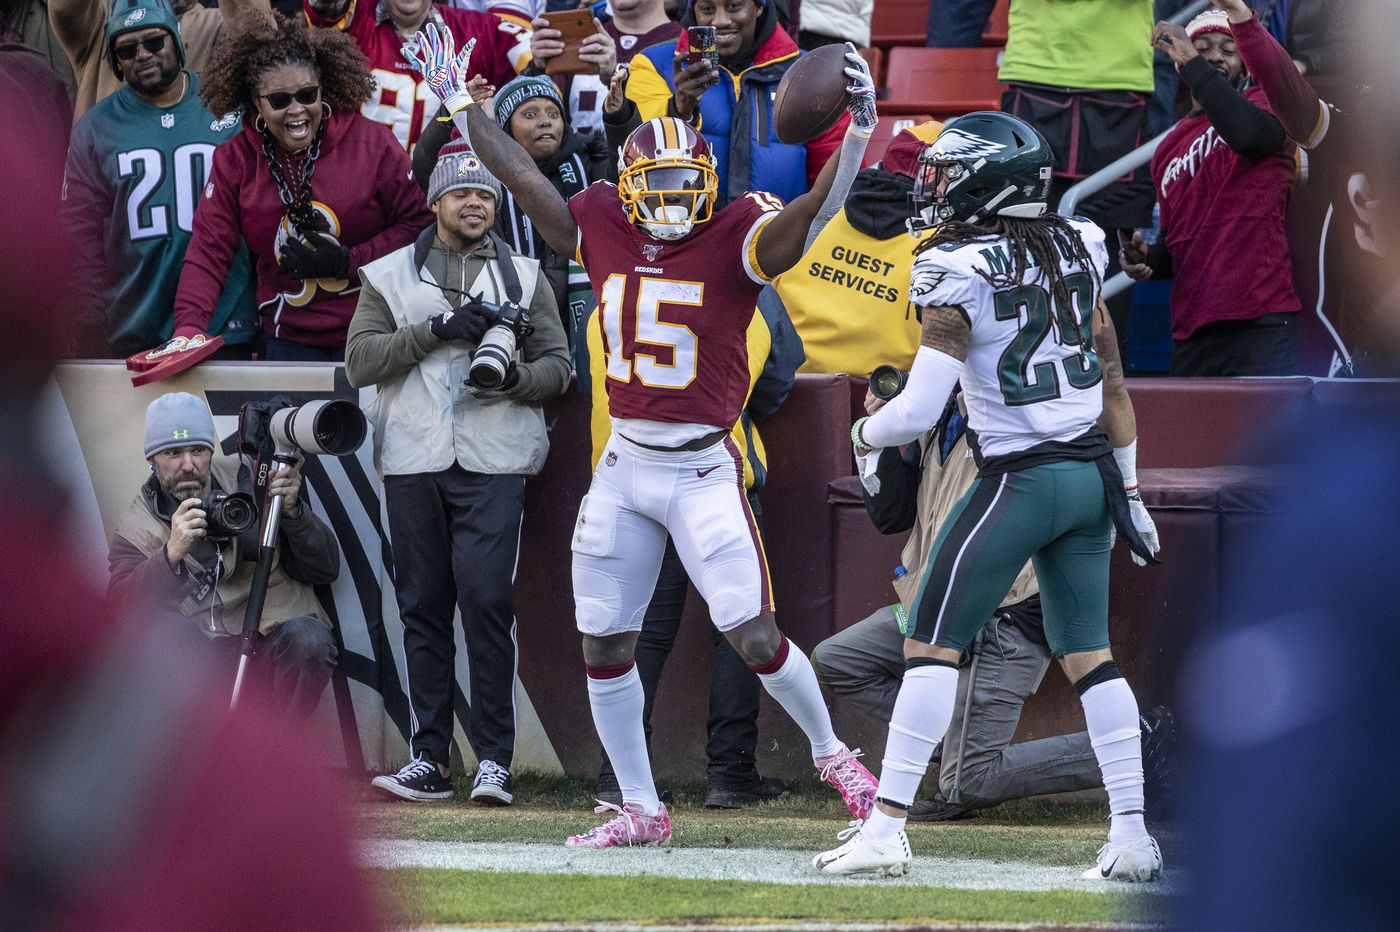 Avonte Maddox, Eagles defense get the job done against Redskins ... barely | Mike Sielski